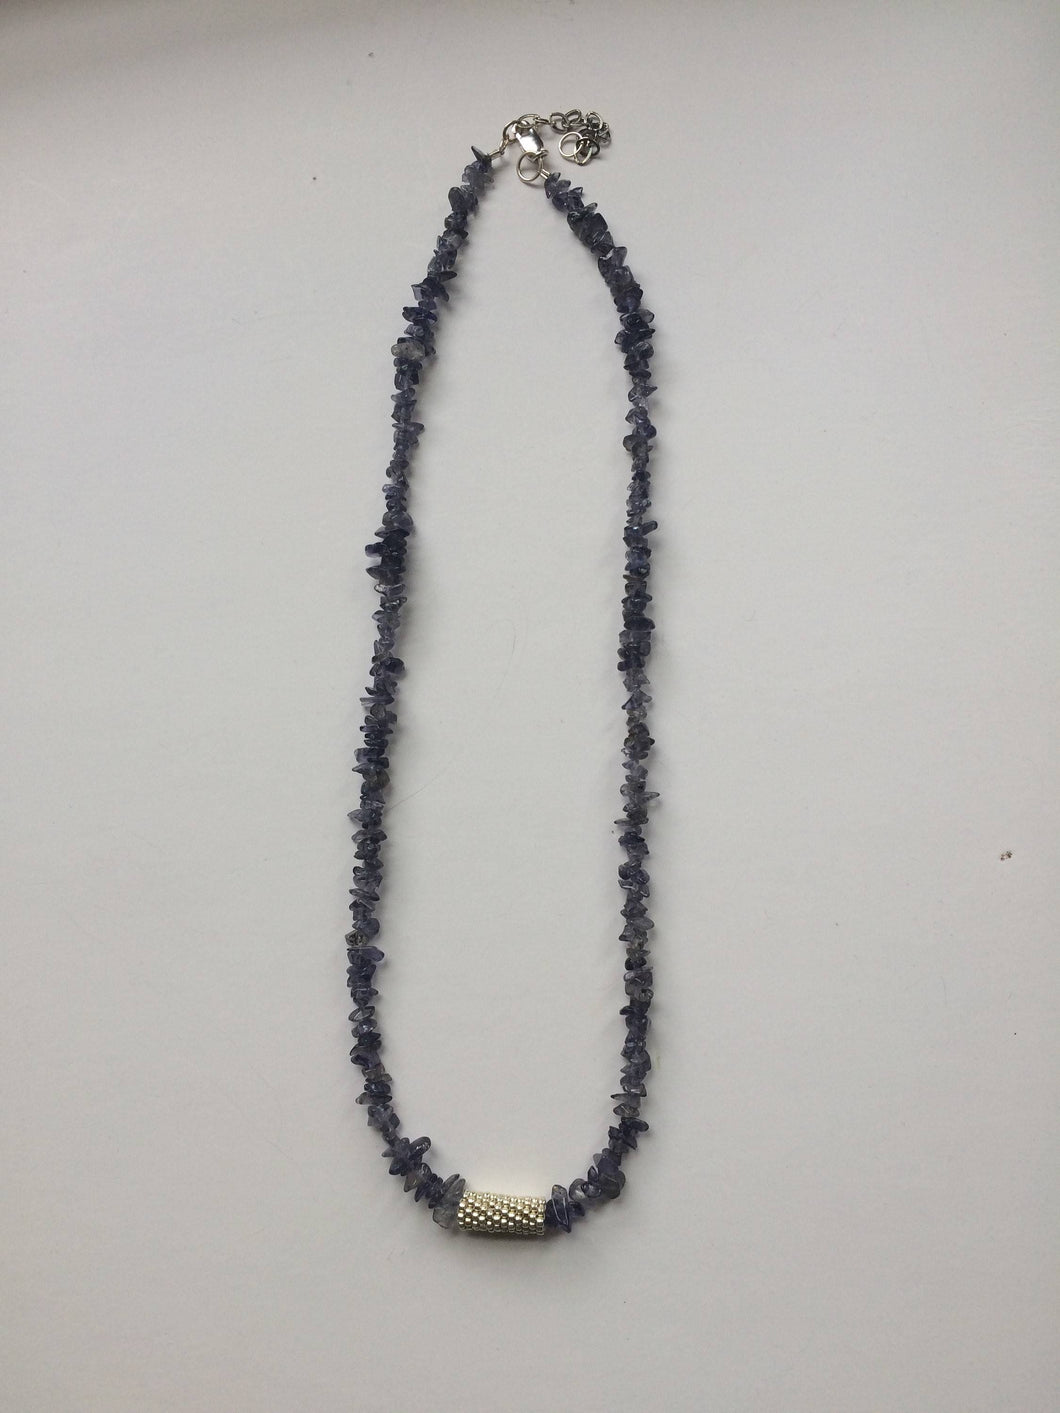 Lapis Lazuli Necklace with Peyote Stitch Tube Bead